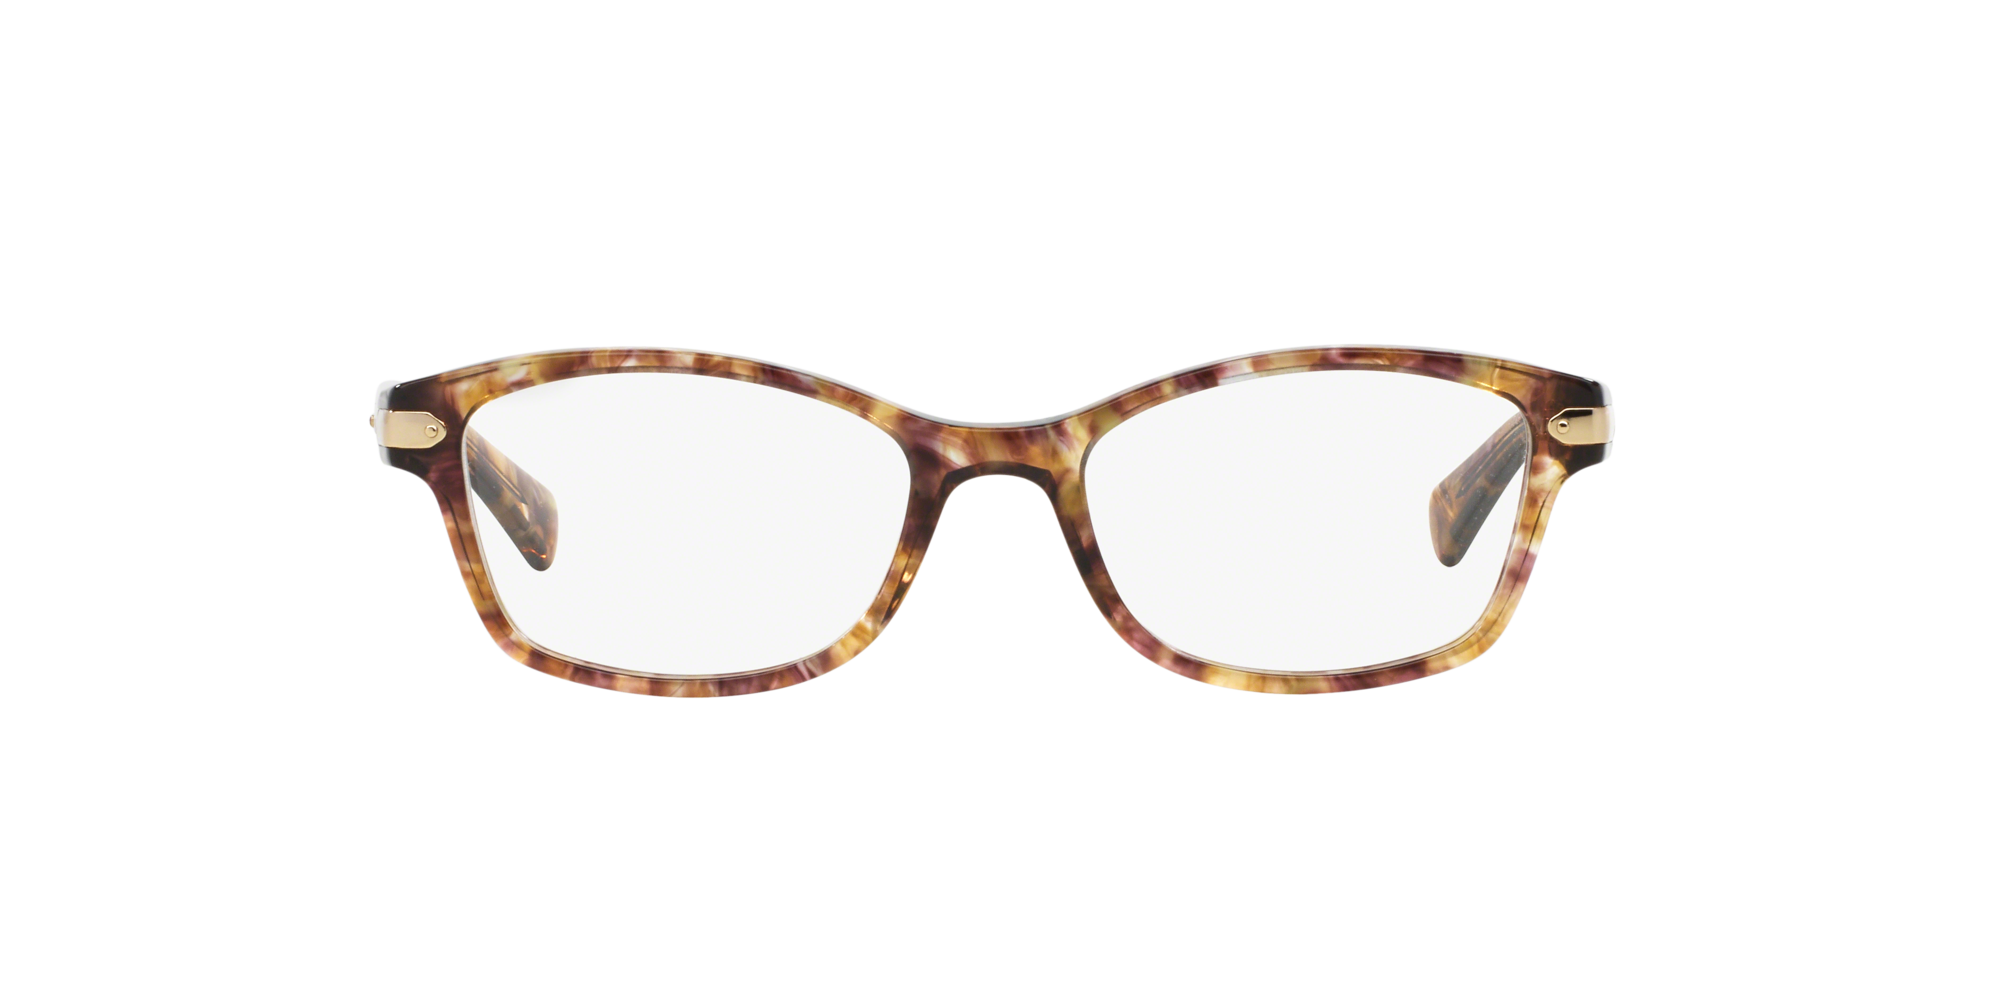 Image for HC6065 from LensCrafters | Glasses, Prescription Glasses Online, Eyewear